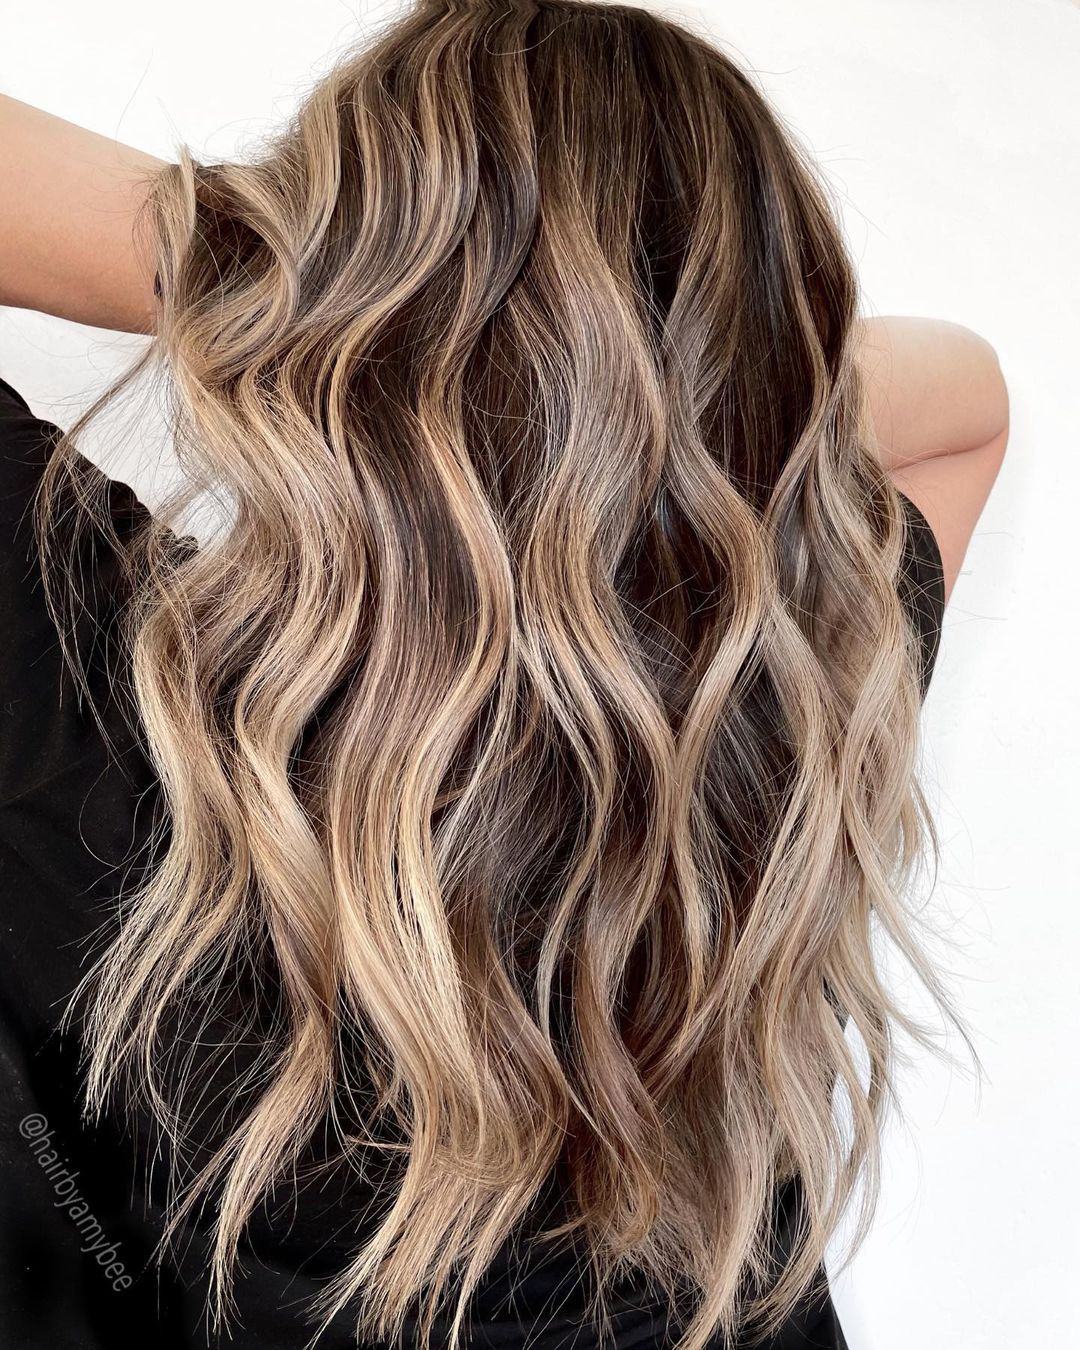 50 Awesome Long Layered Hair Ideas For 2021 images 40